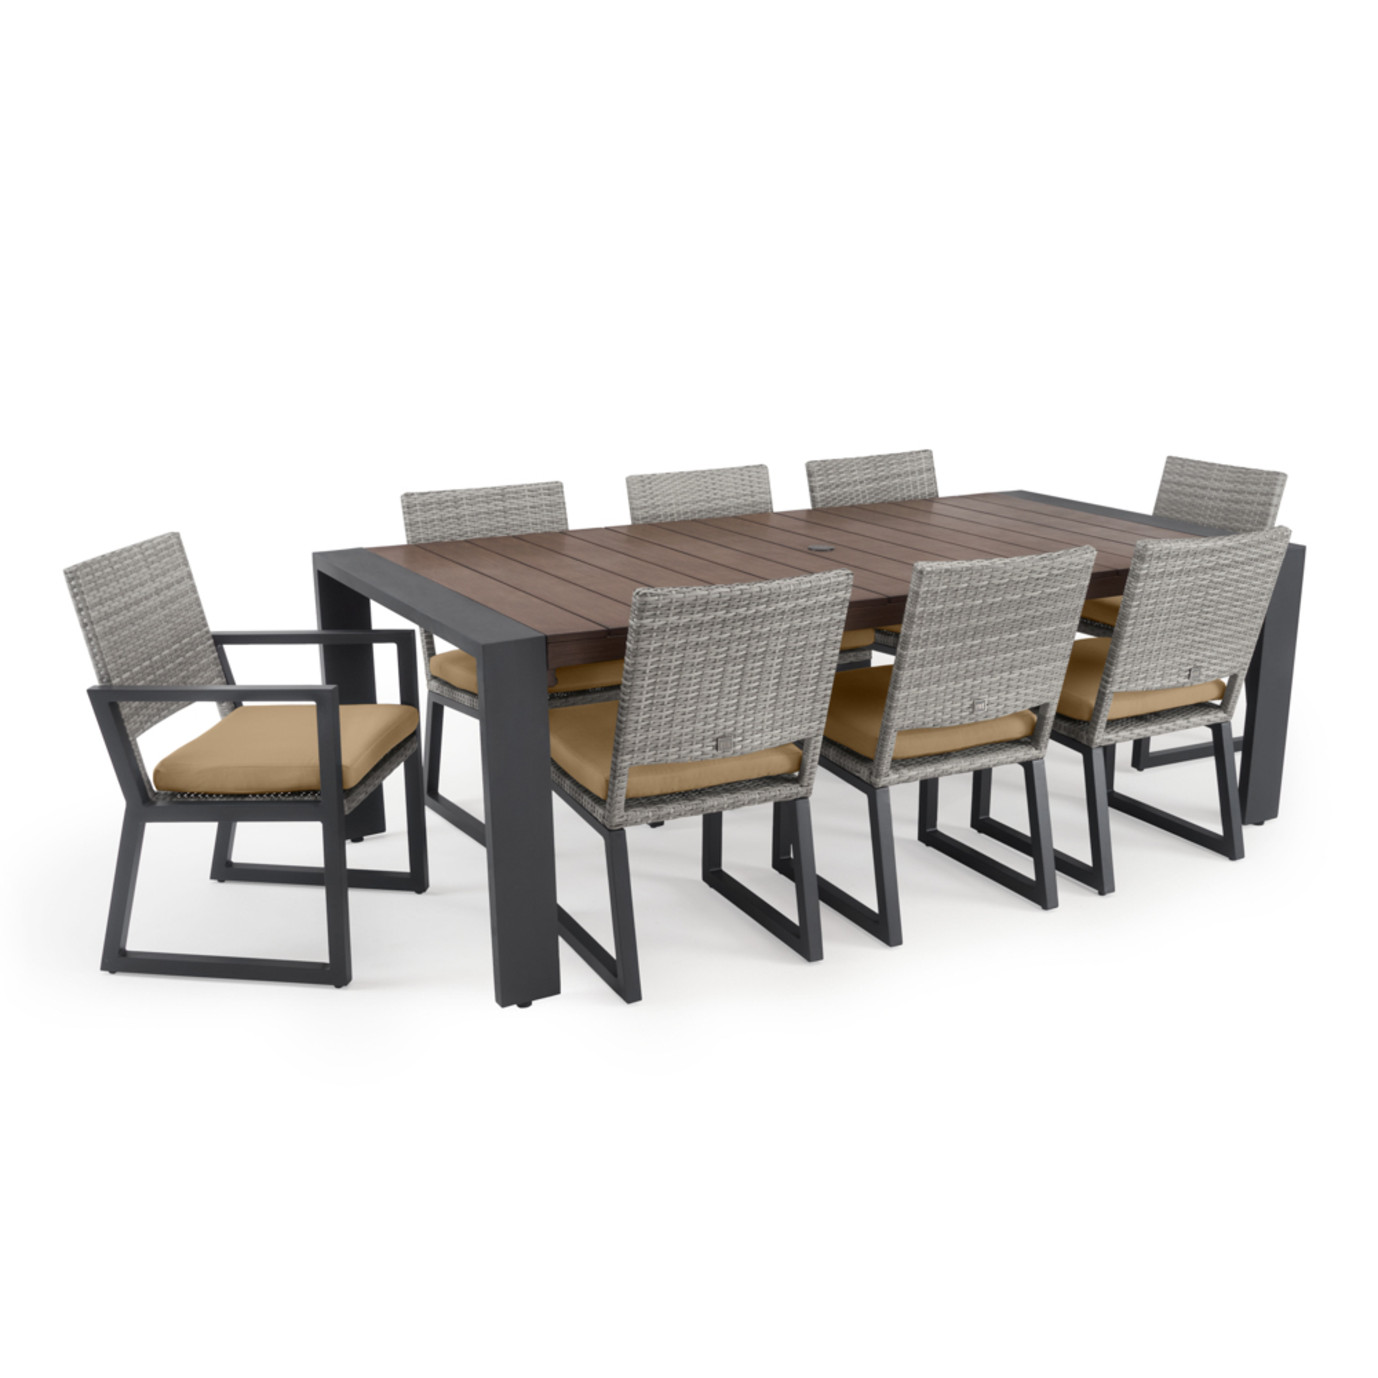 Milo™ Gray 18 Piece Estate Set - Maxim Beige